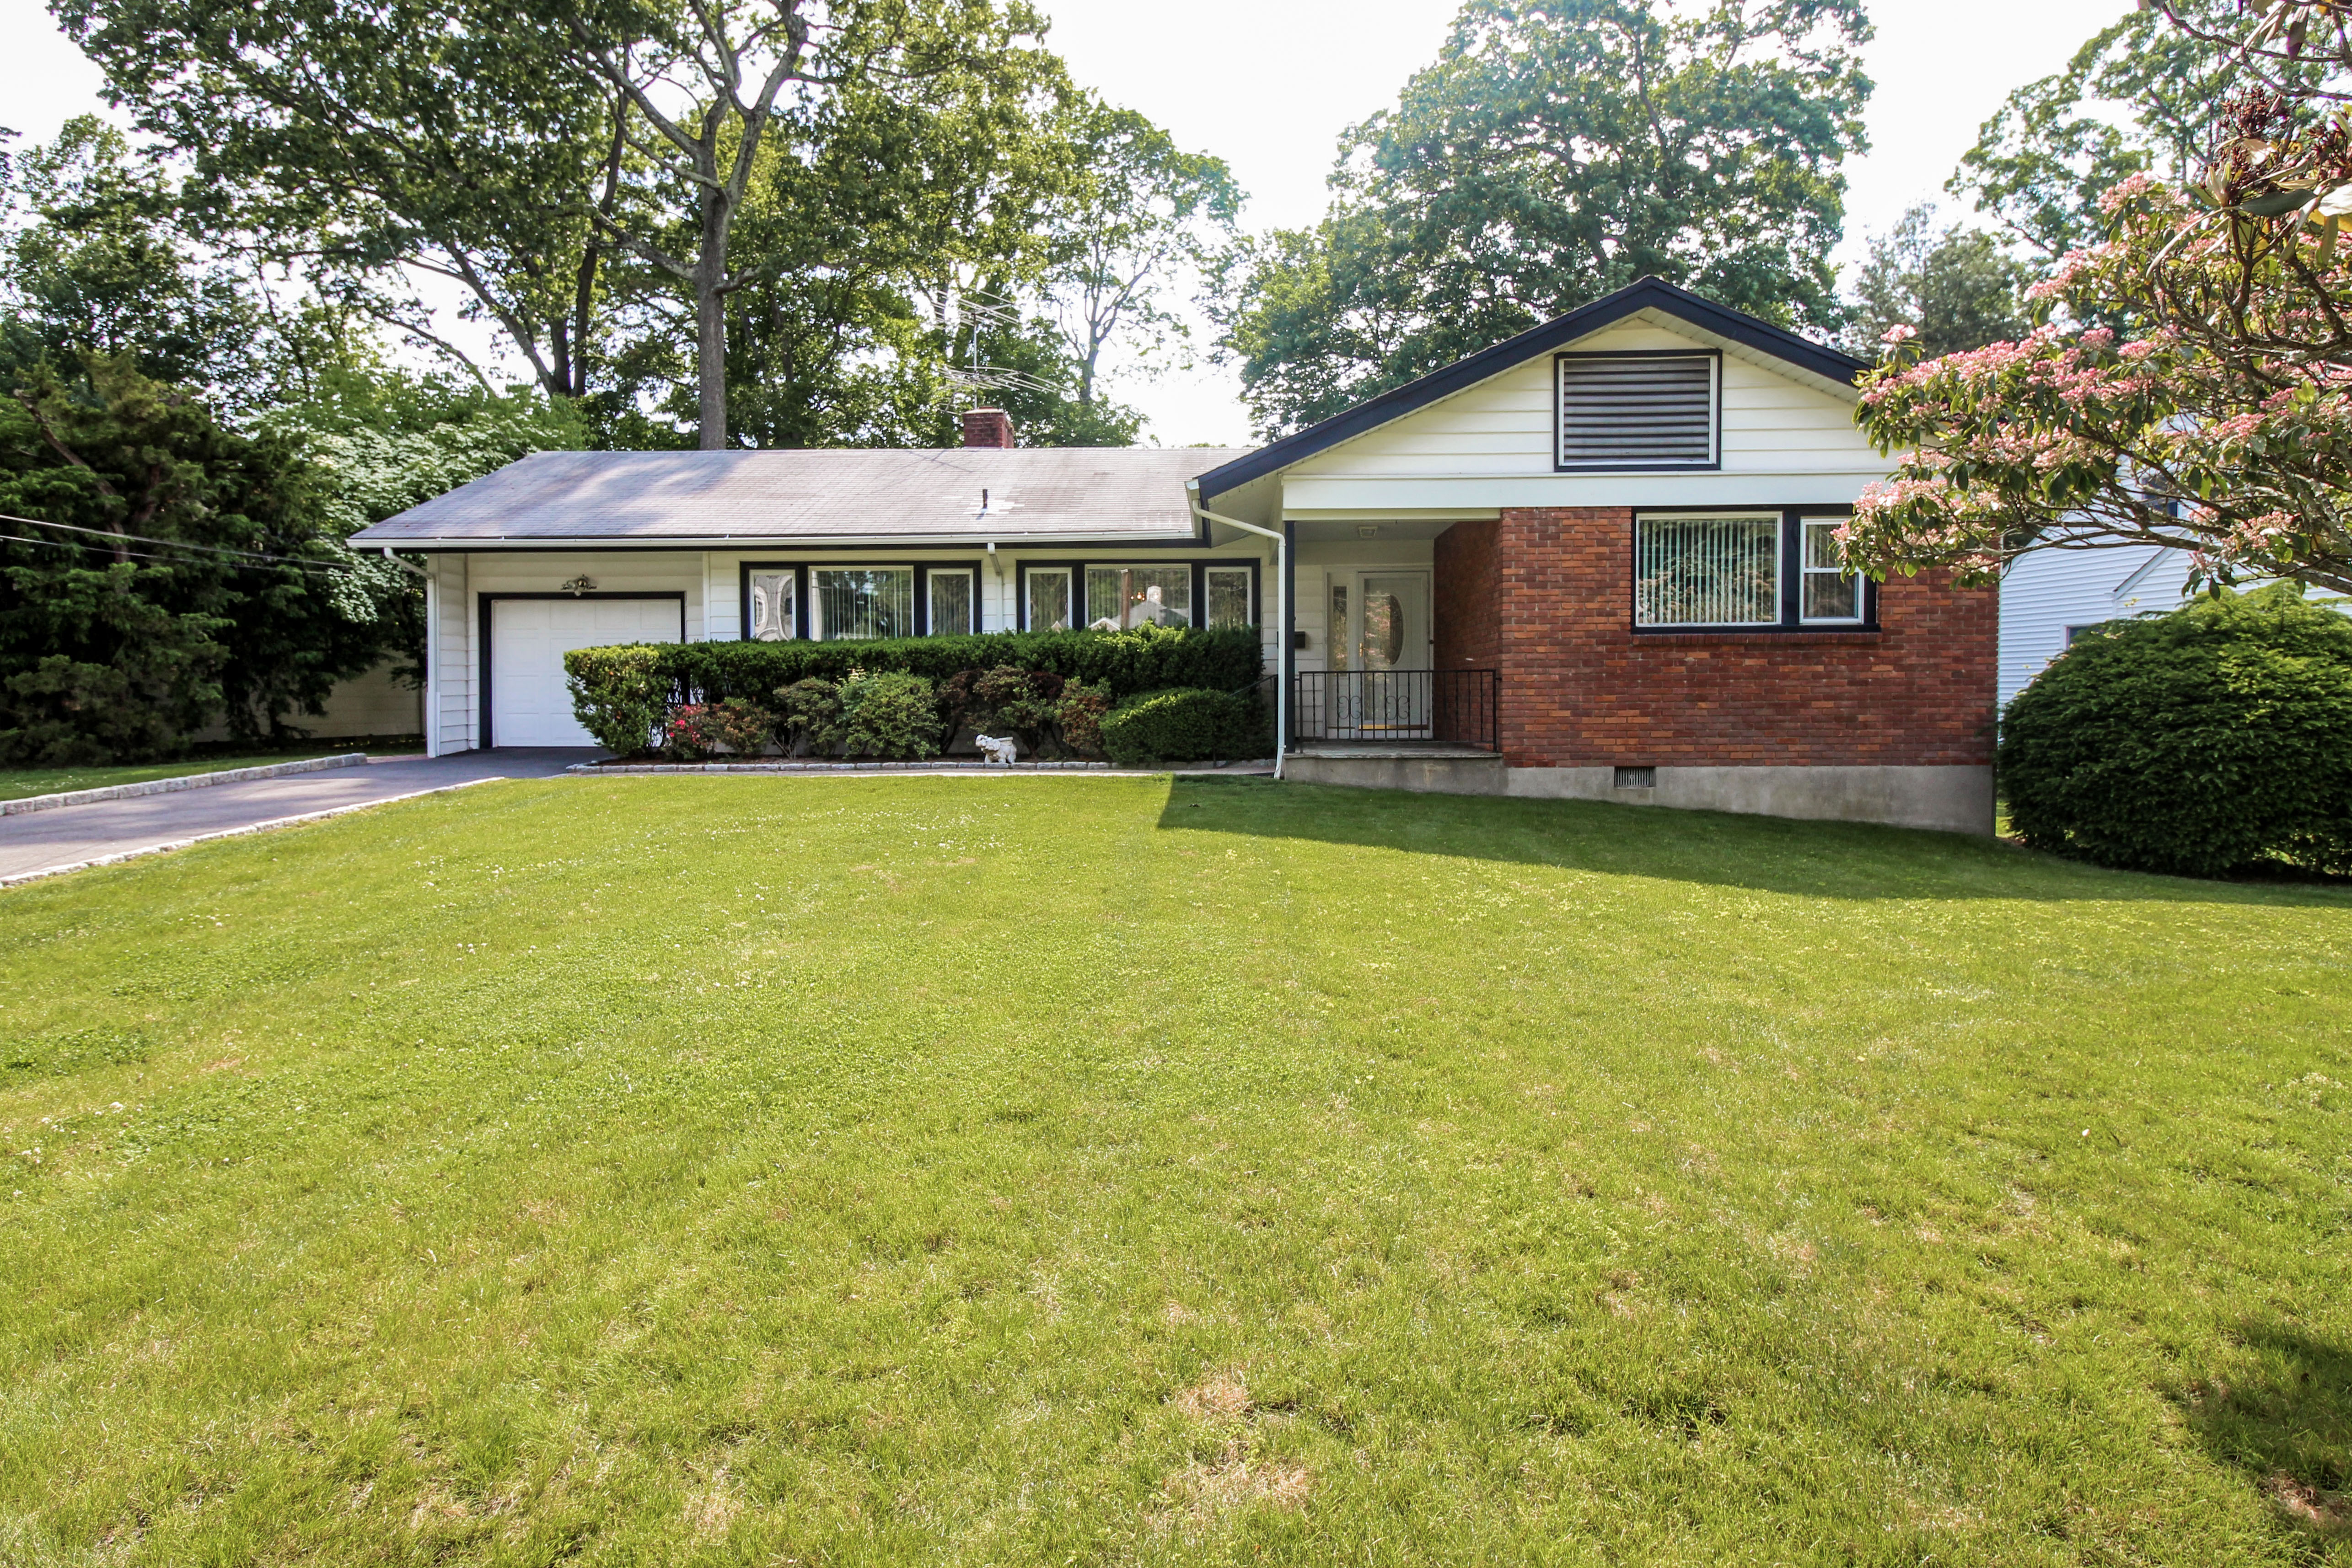 Single Family Home for Sale at Desirable Home in Wilmot Woods 29 Alden Court Scarsdale, New York, 10583 United States